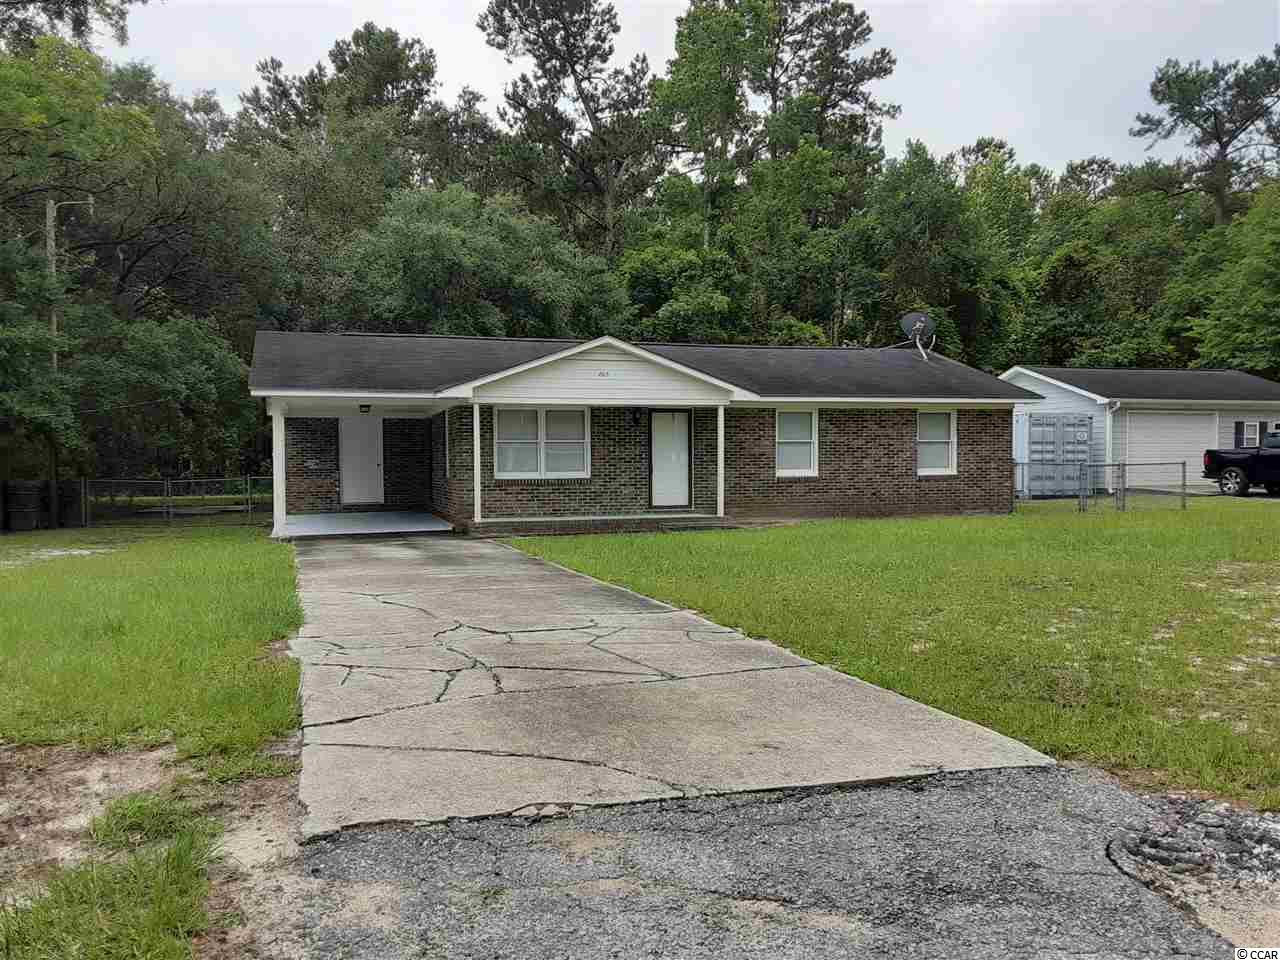 3 bedroom/1 bath brick ranch in the Maryville area of Georgetown. Square footage is approximate and not guaranteed. Buyer is responsible for verification.